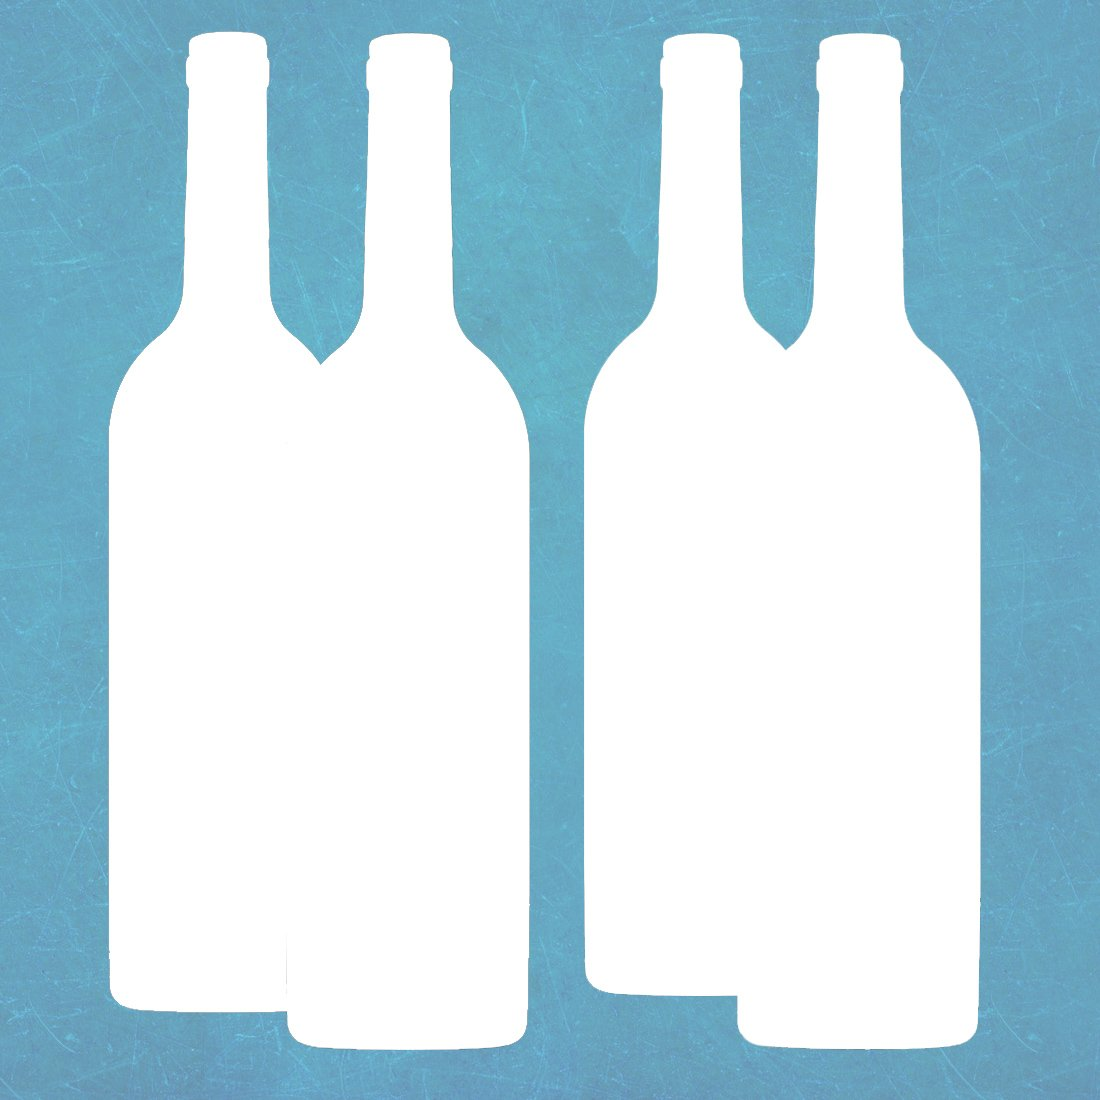 Case of Cape Cod Cellars® Wines of your choice